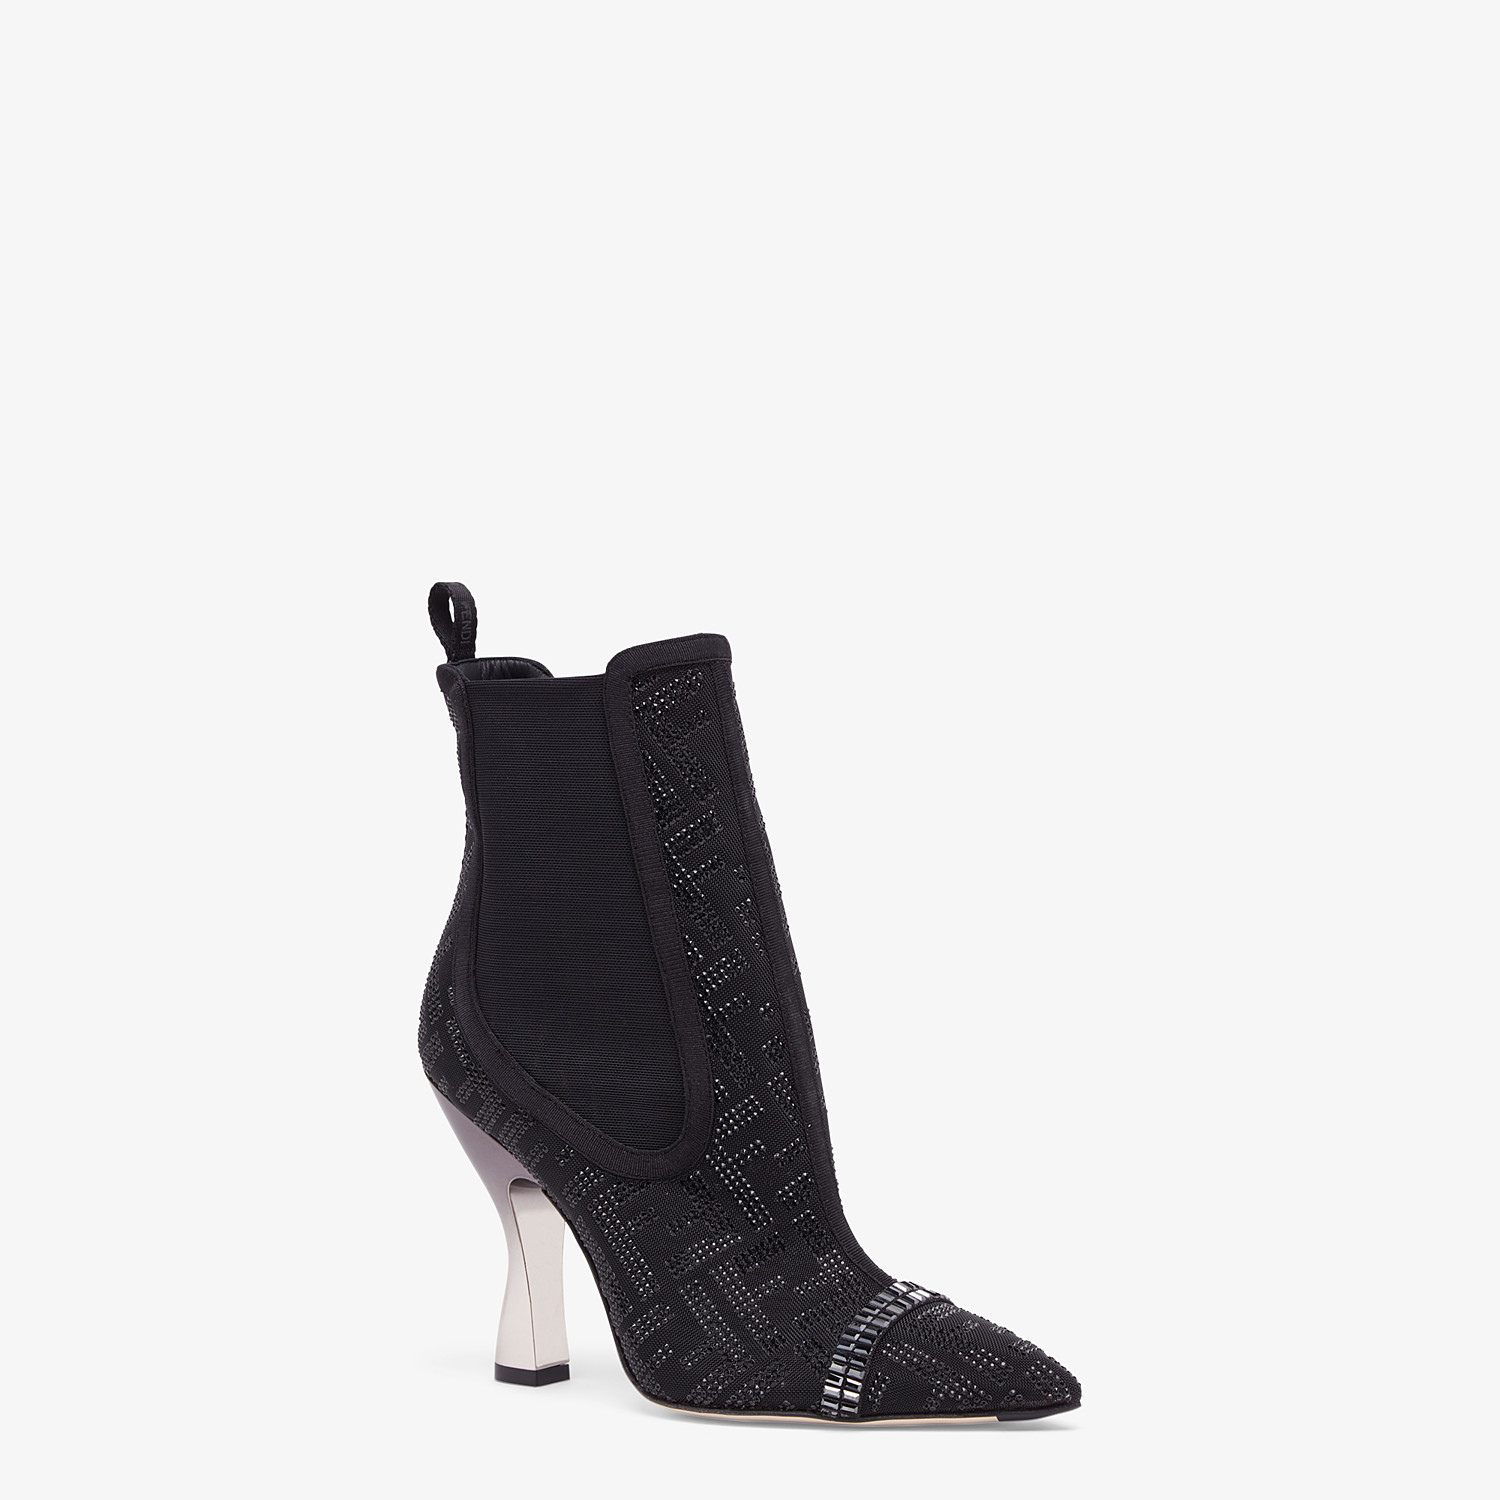 FENDI ANKLE BOOTS - Colibrì in black mesh - view 2 detail